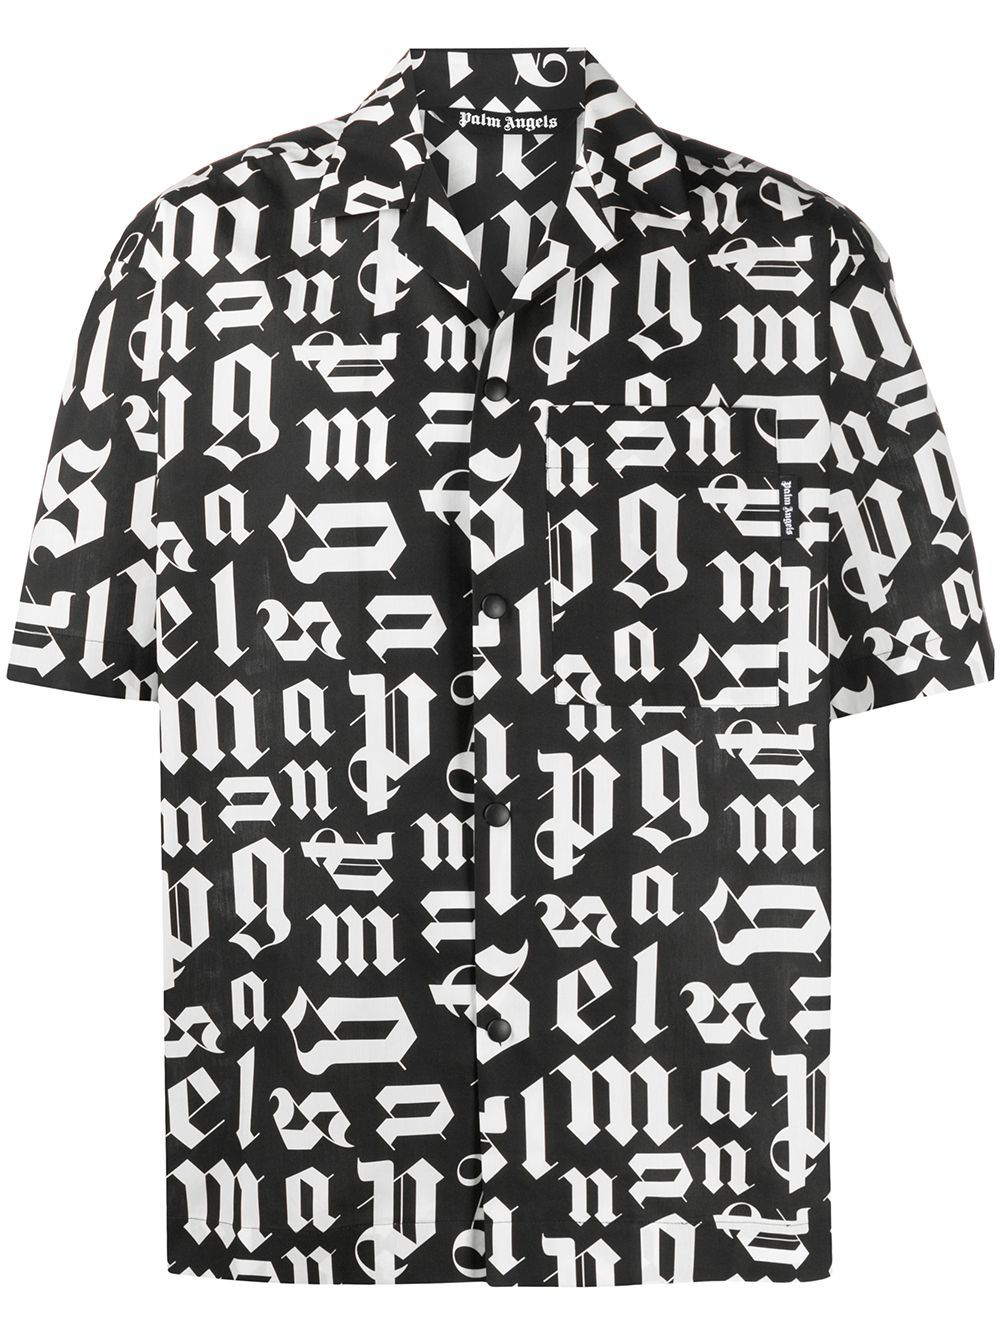 PALM ANGELS Broken Monogram Shirt Black/White - Maison De Fashion